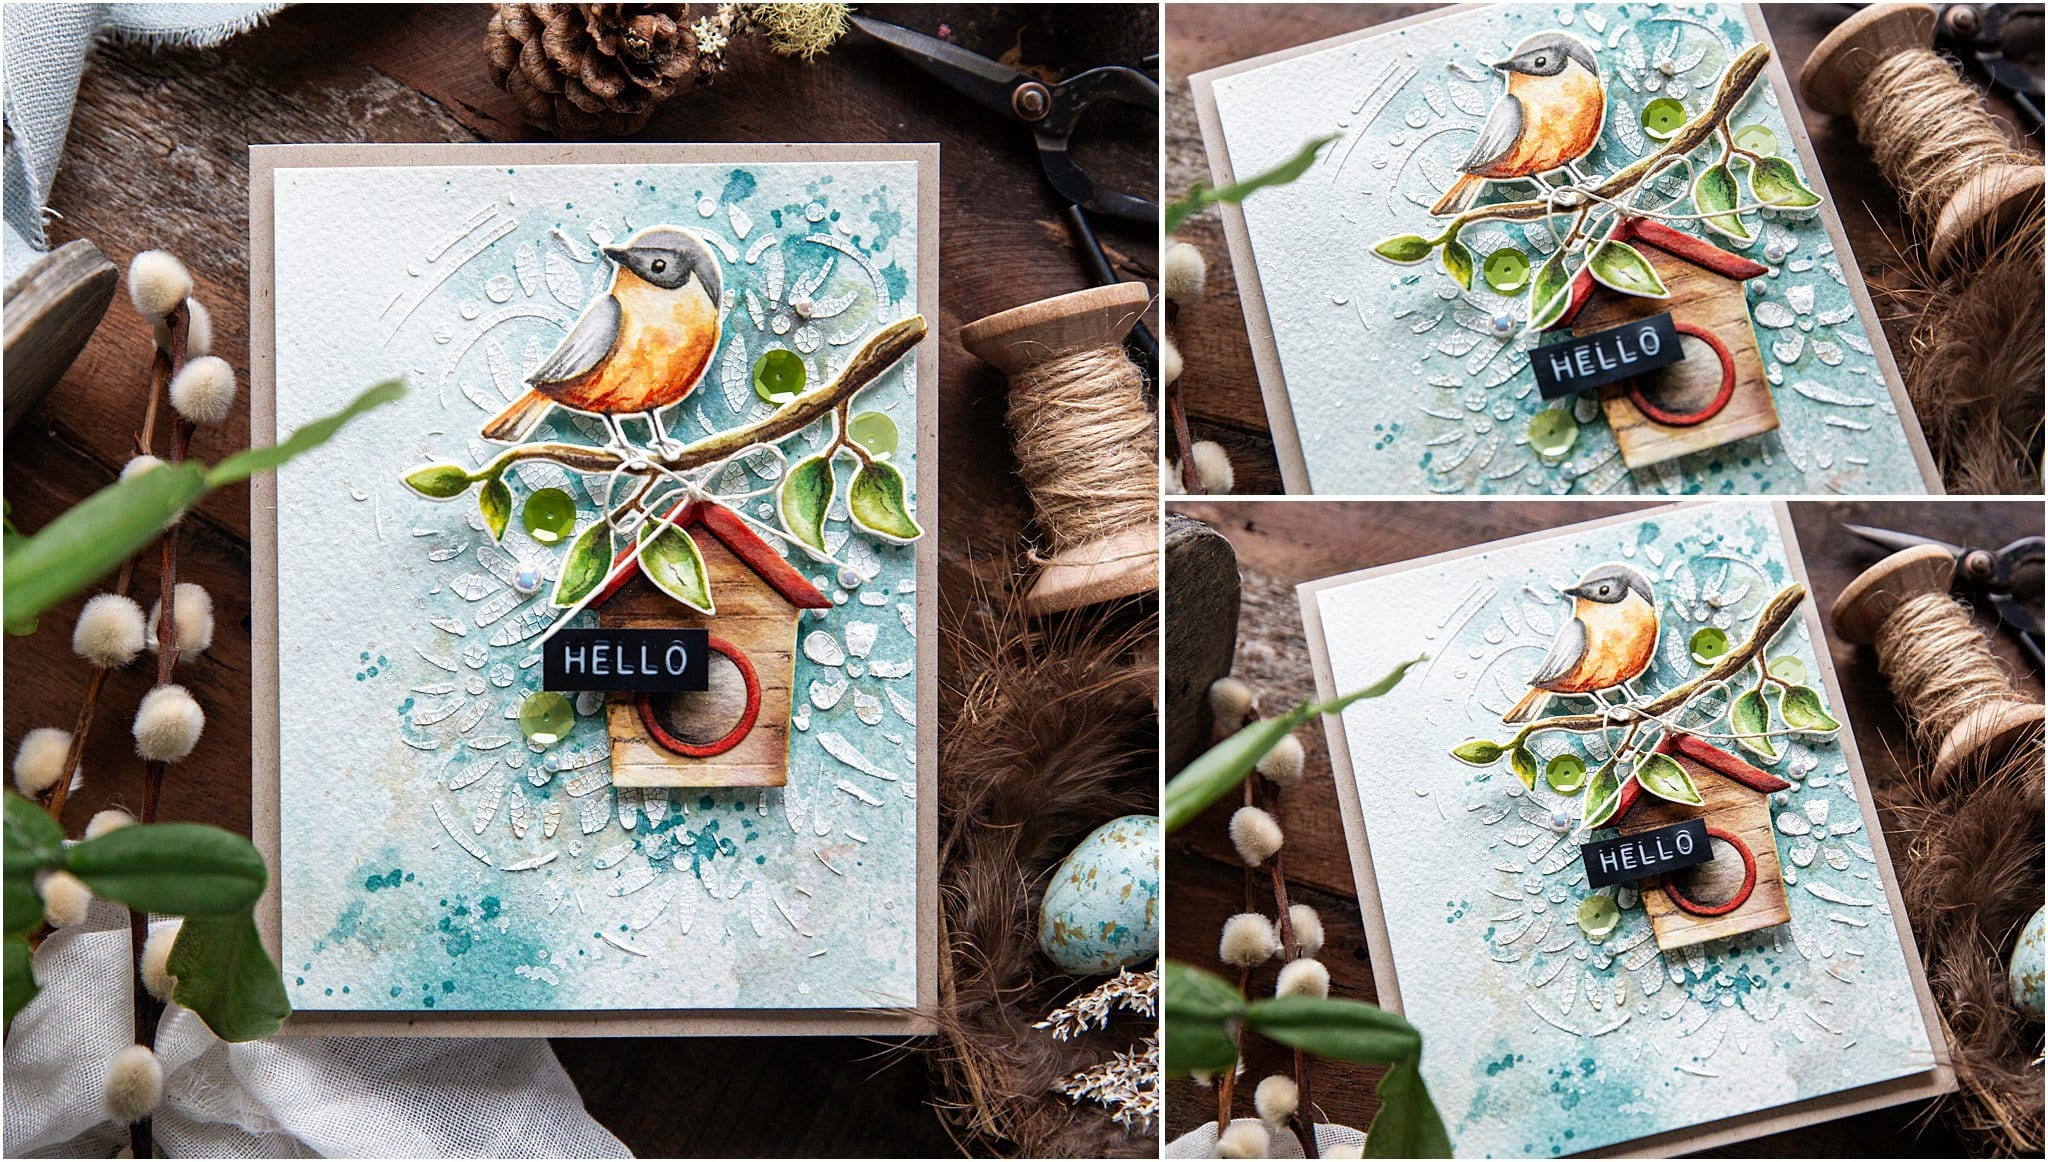 Video tutorial watercolouring a spring bird scene with Distress Inks for a handmade card! Design by Debby Hughes using supplies from Simon Says Stamp #handmadecards #cardmaking #cardmakingideas #cardmakingtechniques  #cardmakingtutorials #handmadecardideas #simonsaysstamp